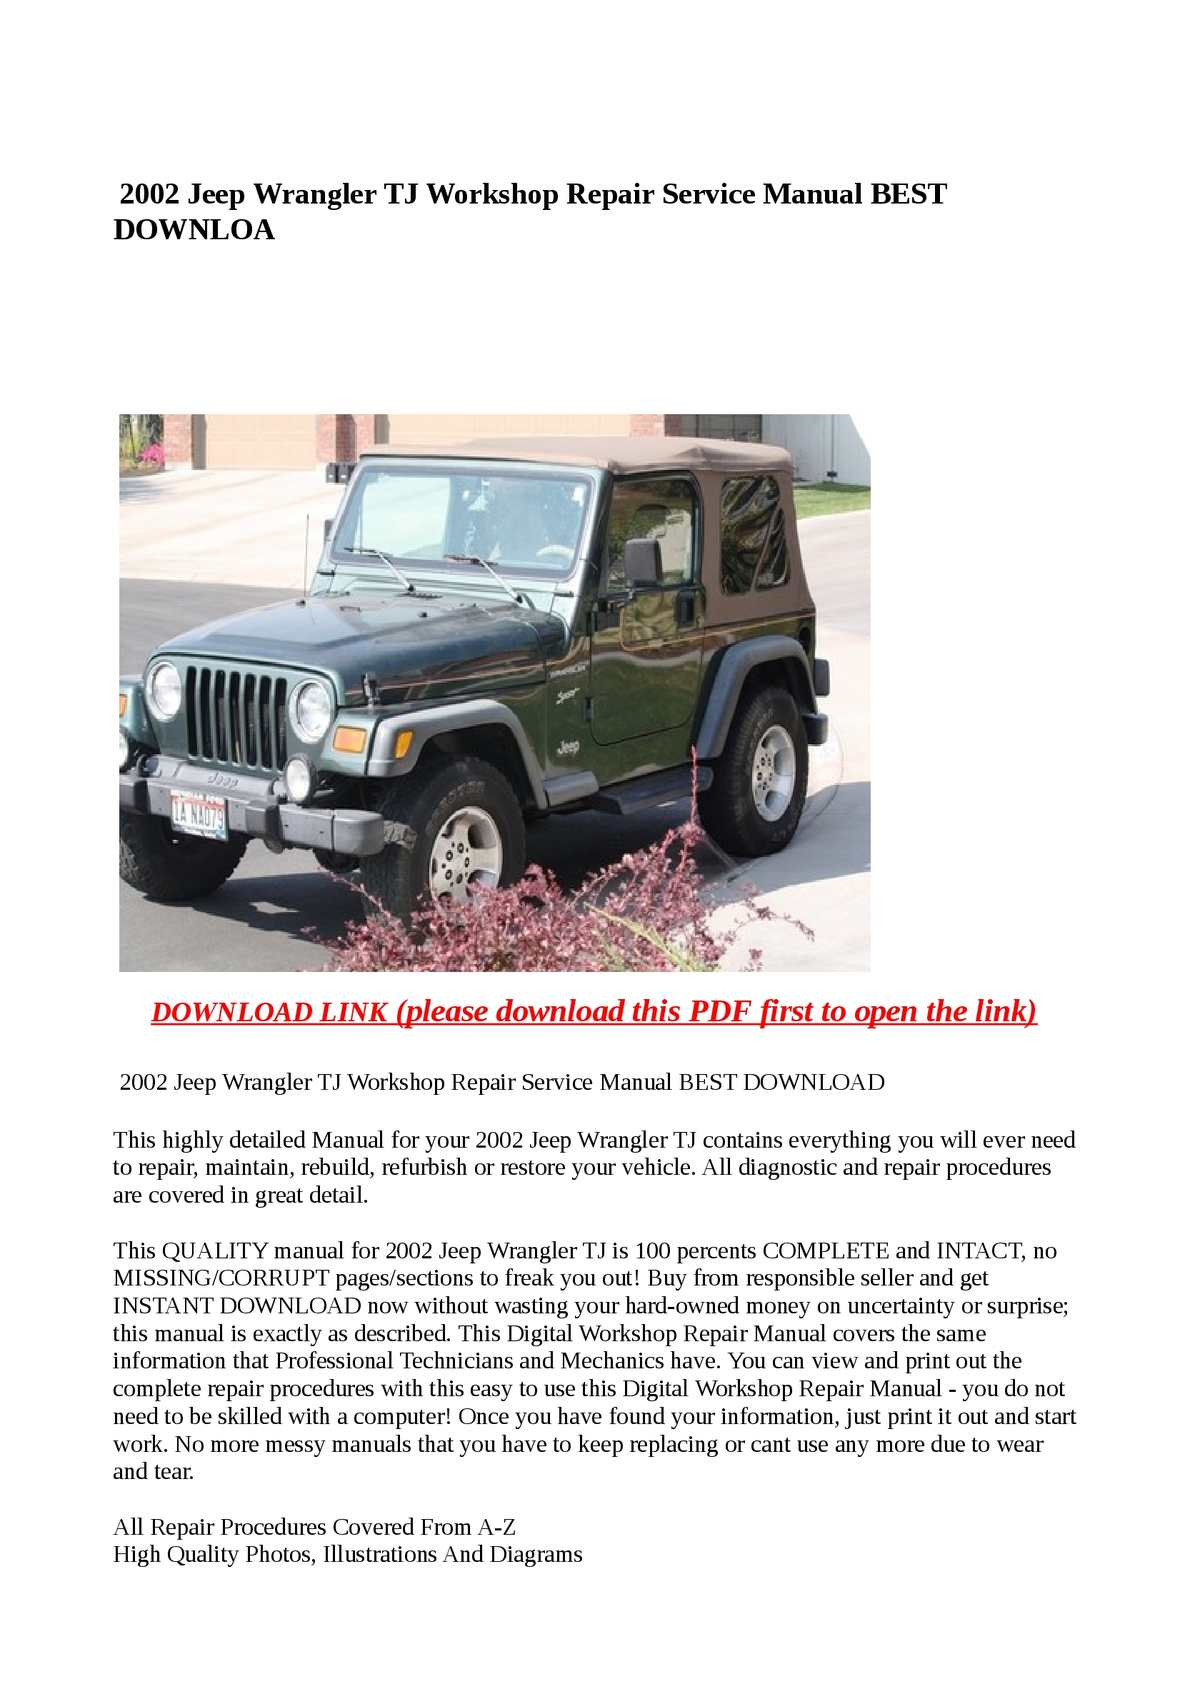 jeep wrangler repair manual pdf